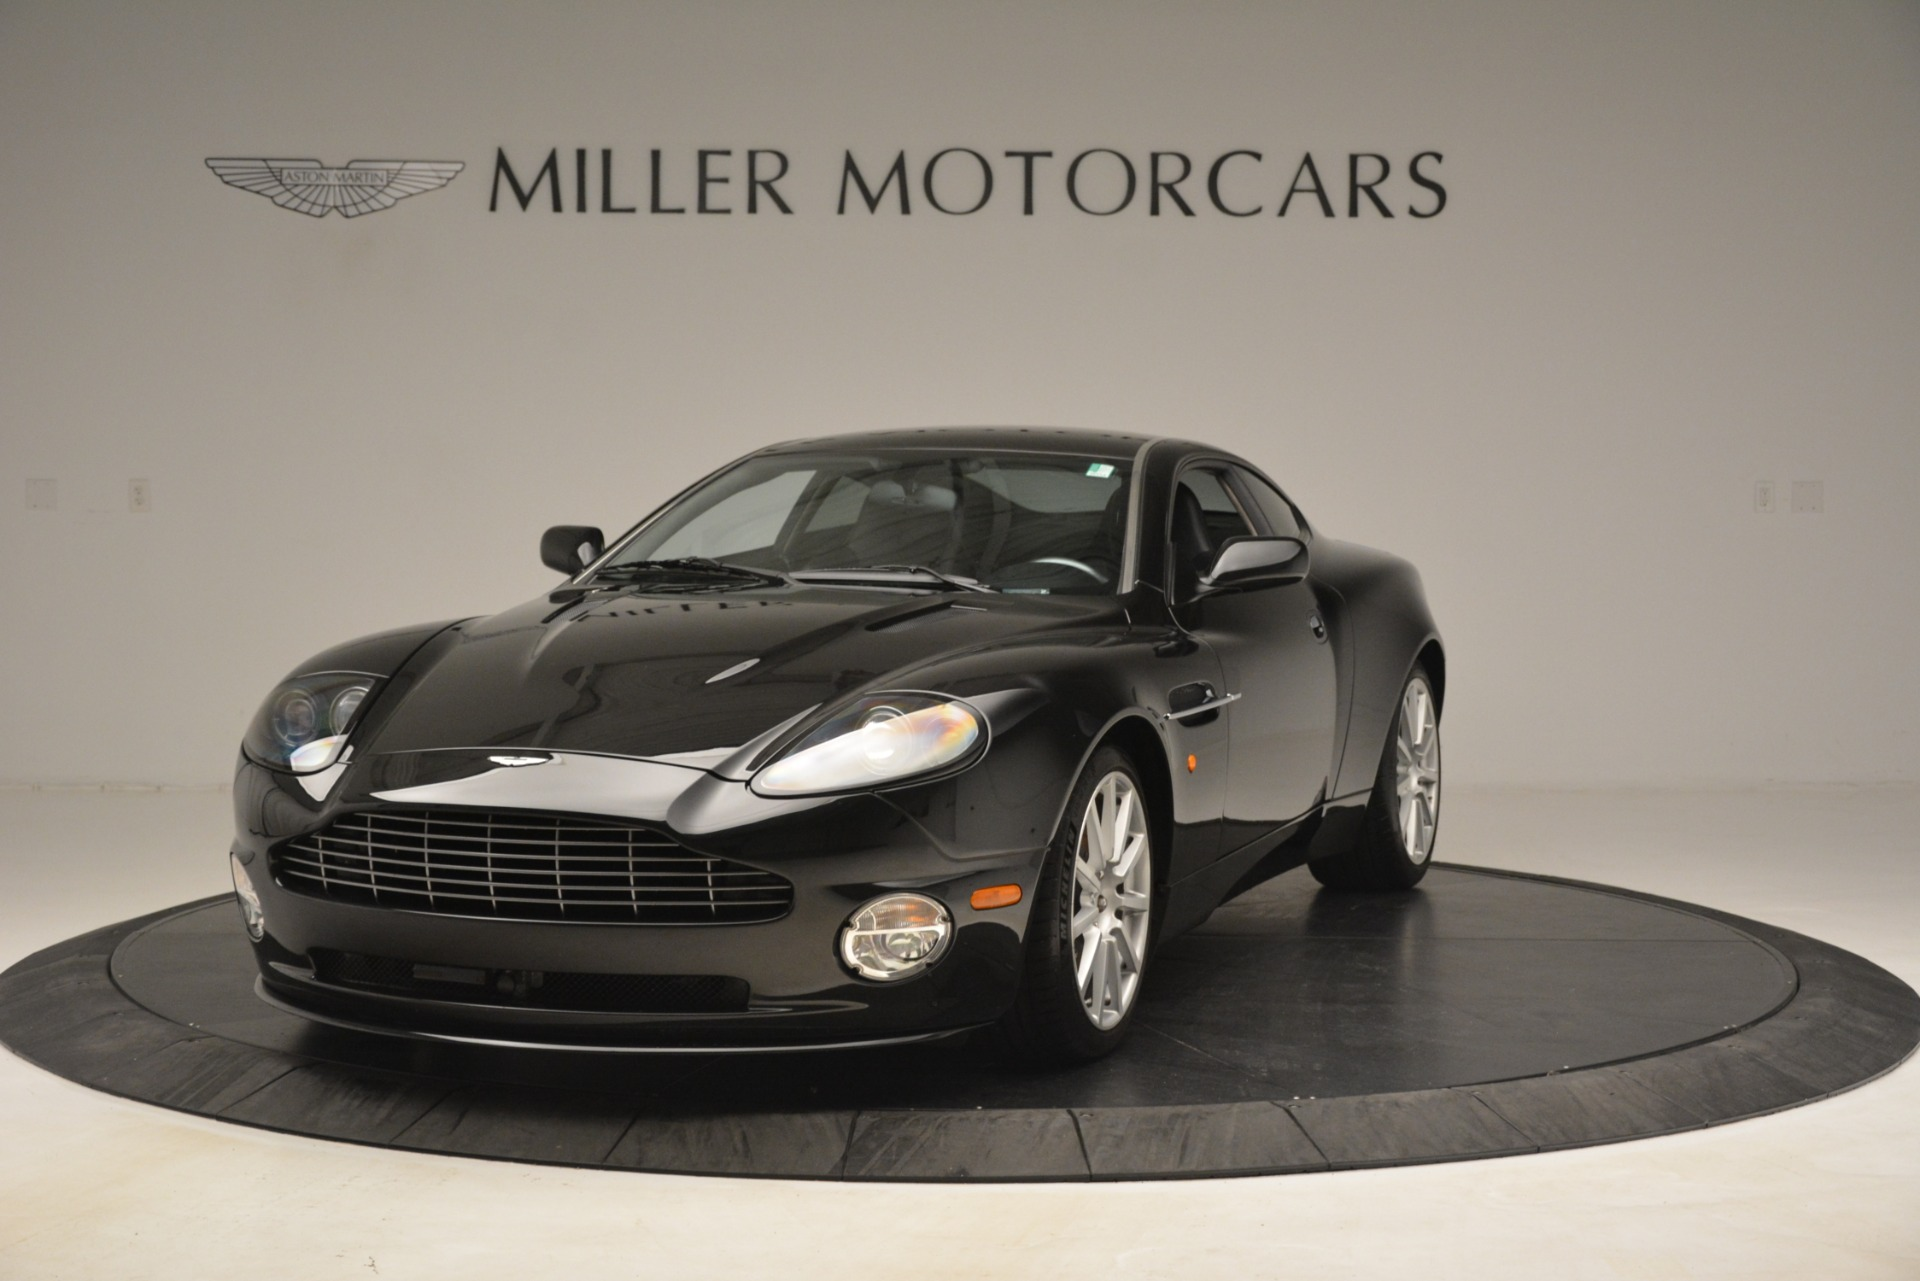 Used 2005 Aston Martin V12 Vanquish S For Sale In Westport, CT 3218_p2